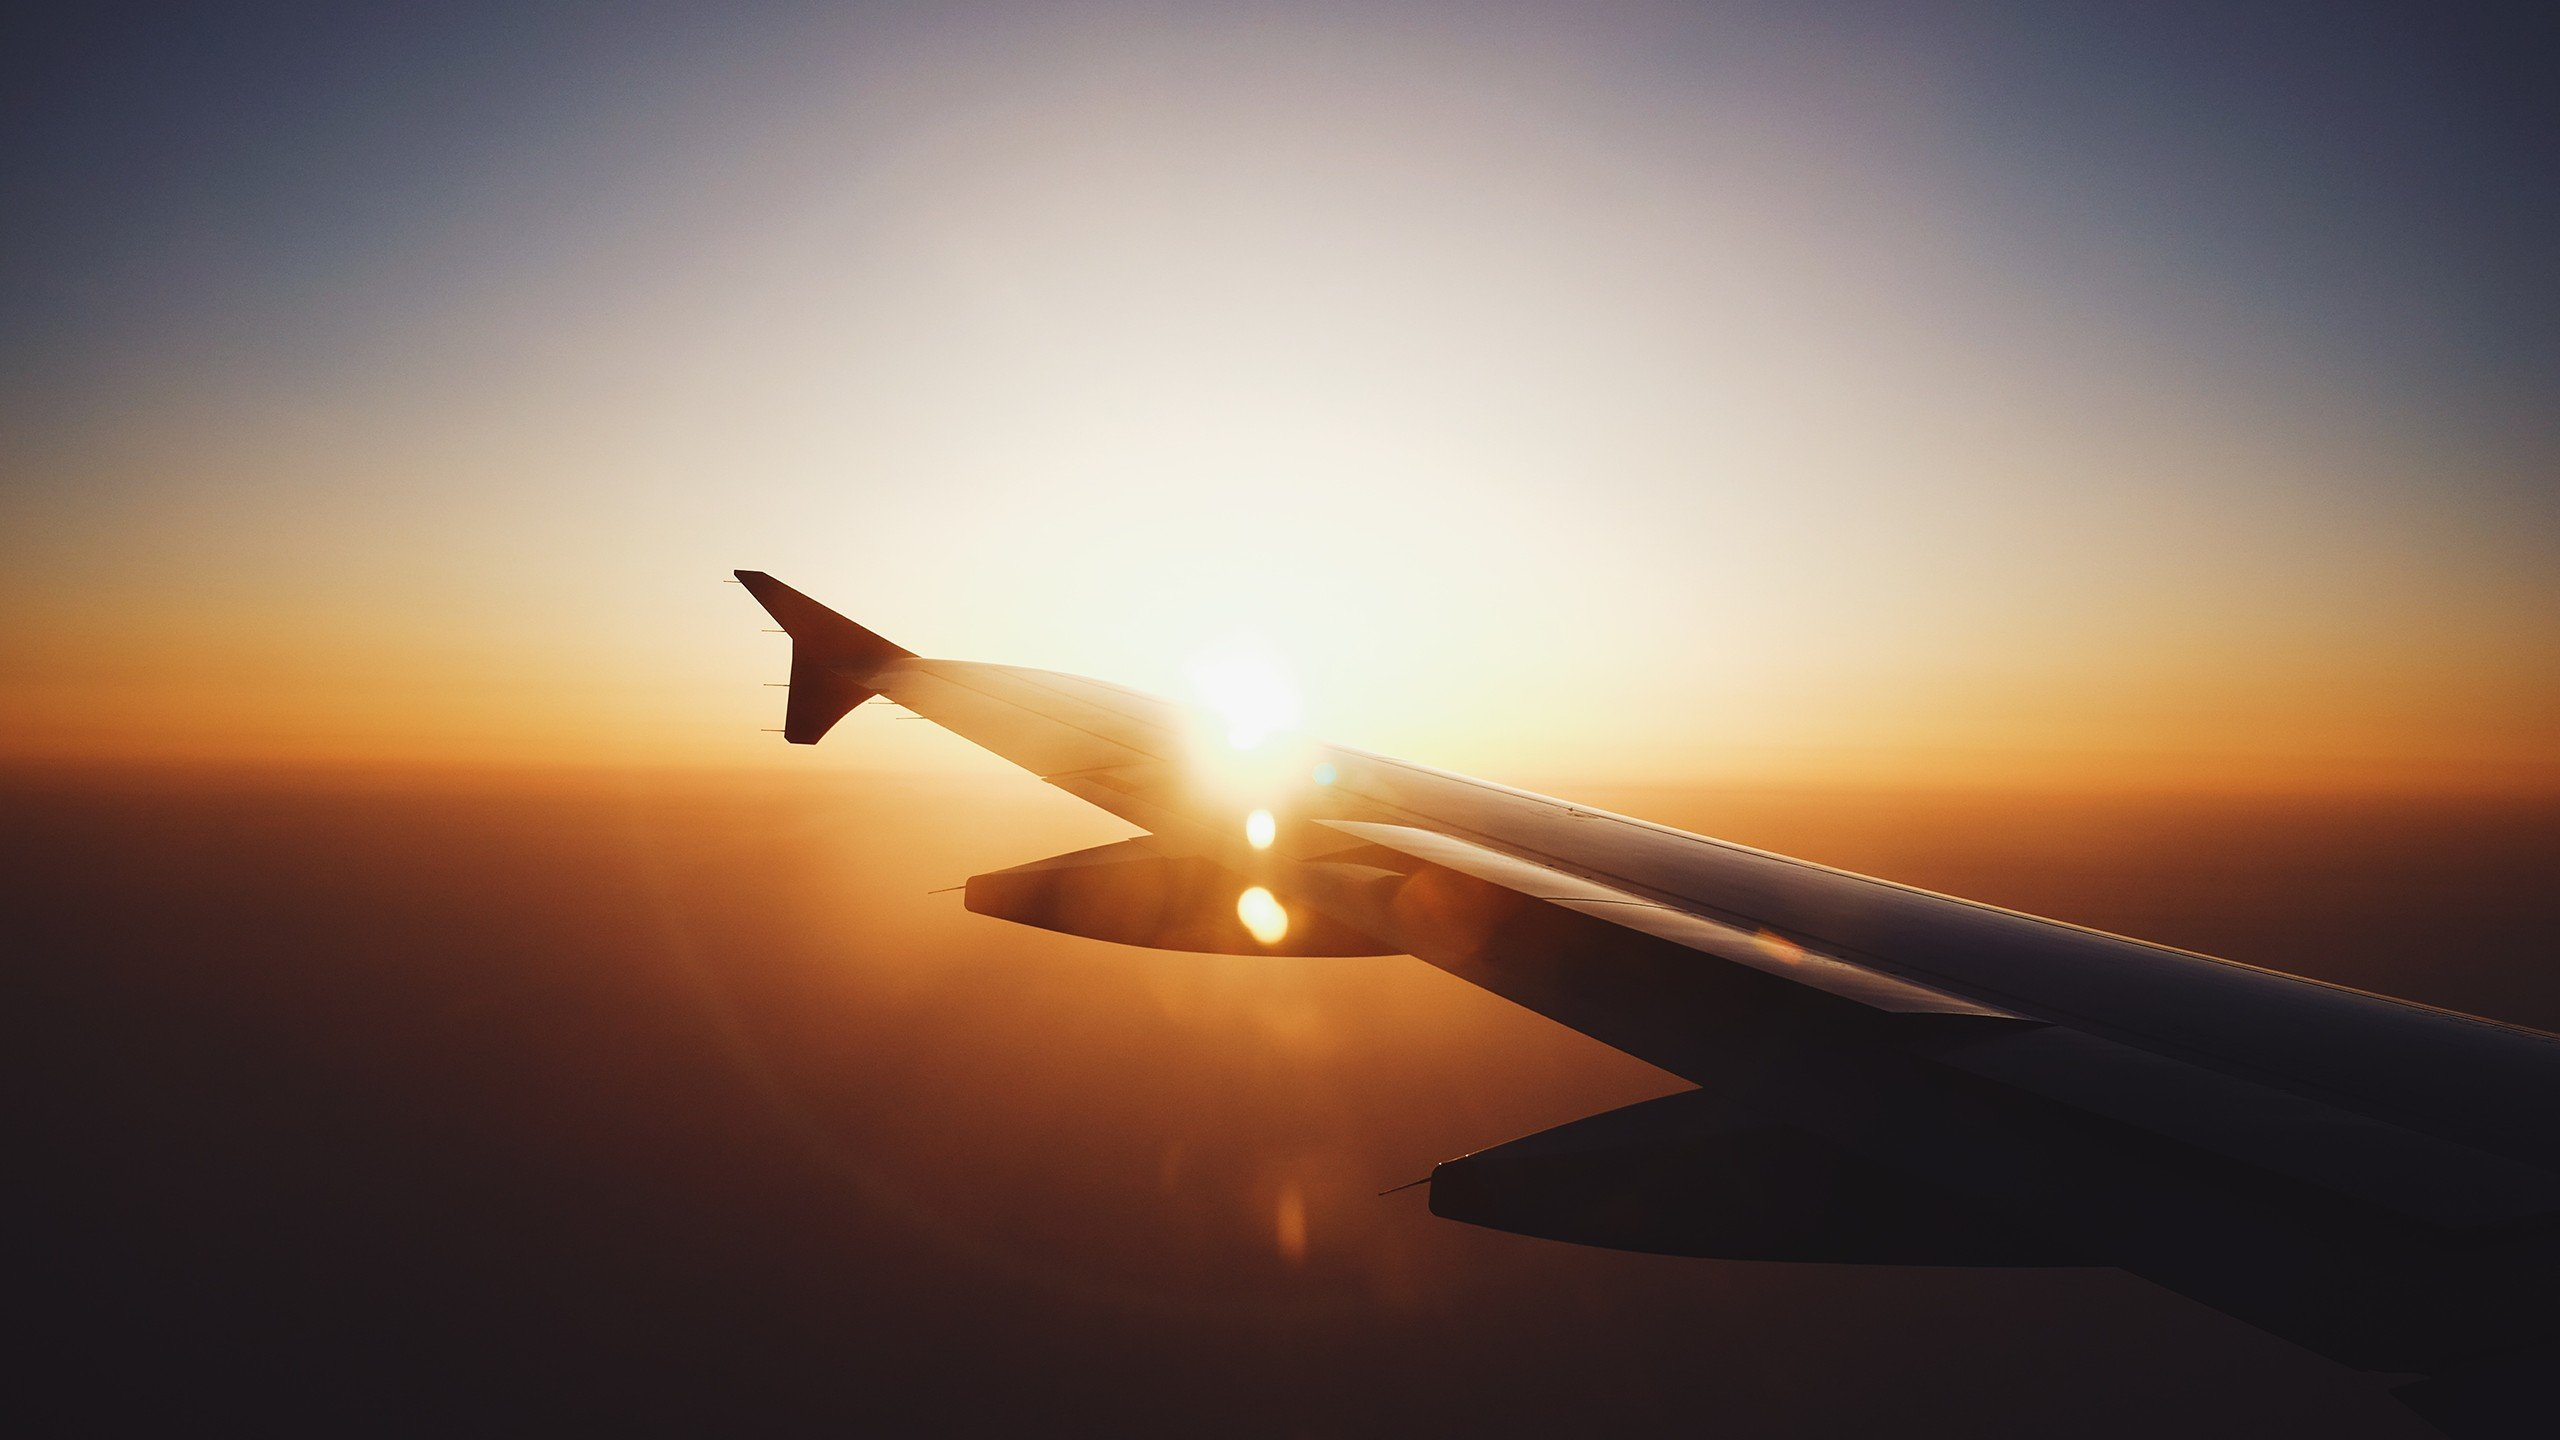 Hd Aeroplane Wallpapers For Desktop Airplane Airplane Wing Sunset Lens Flare Hd Wallpapers